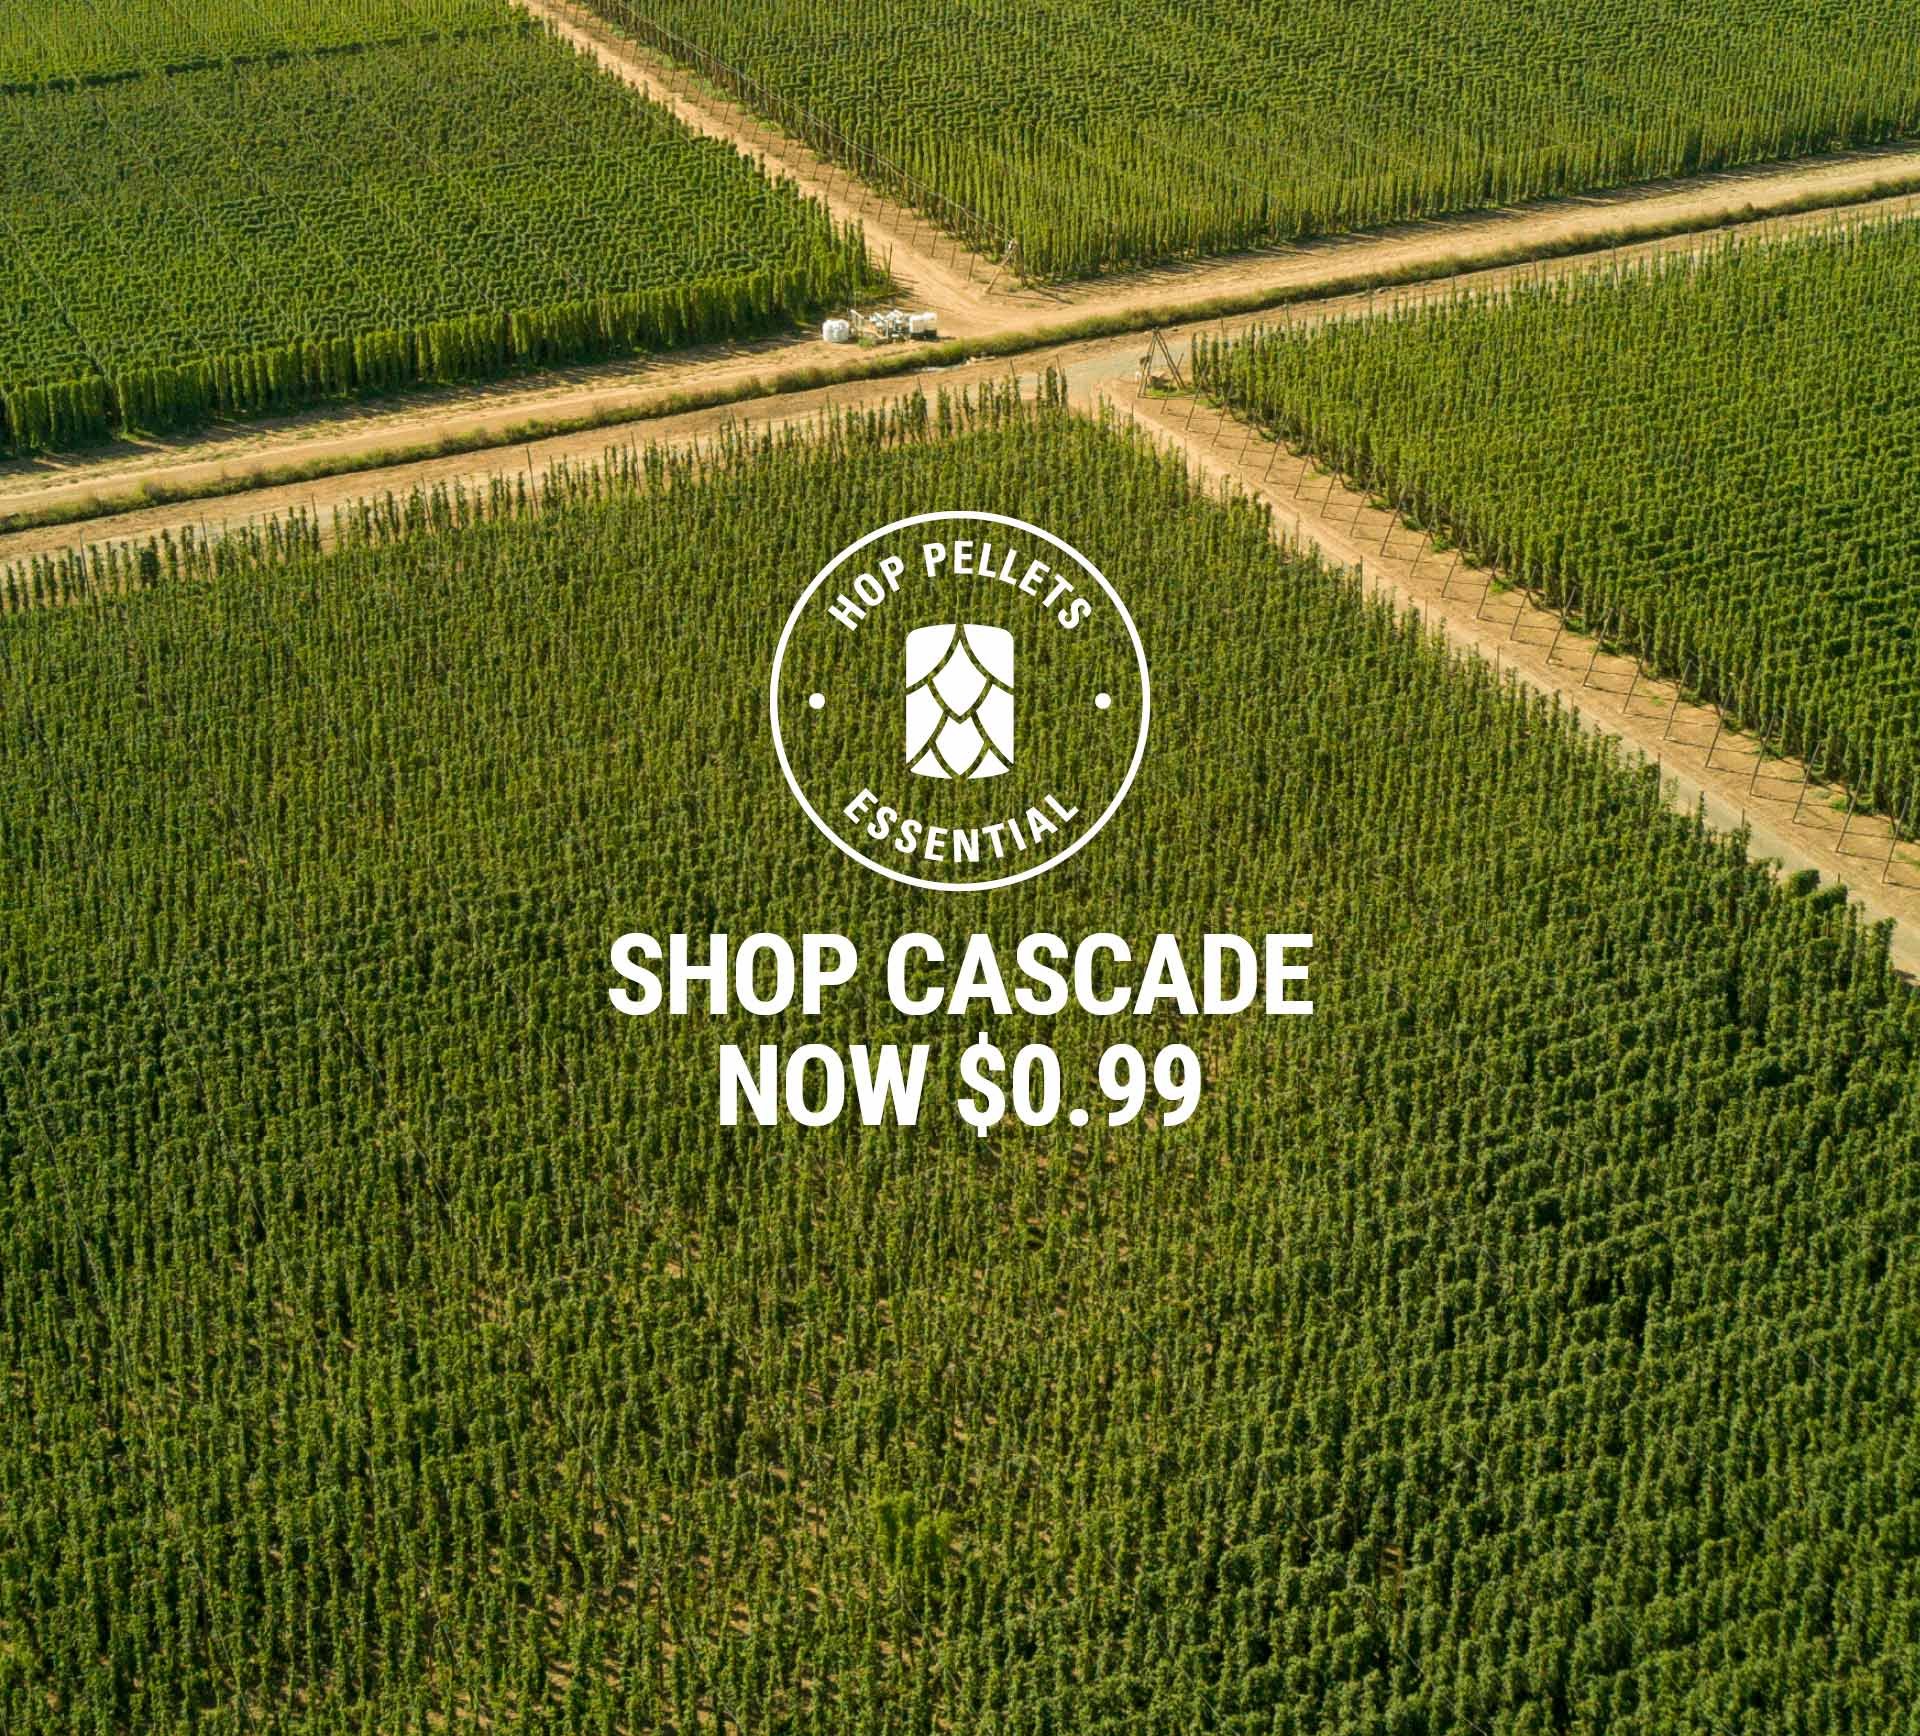 Shop Cascade Hops - Desktop (Main)